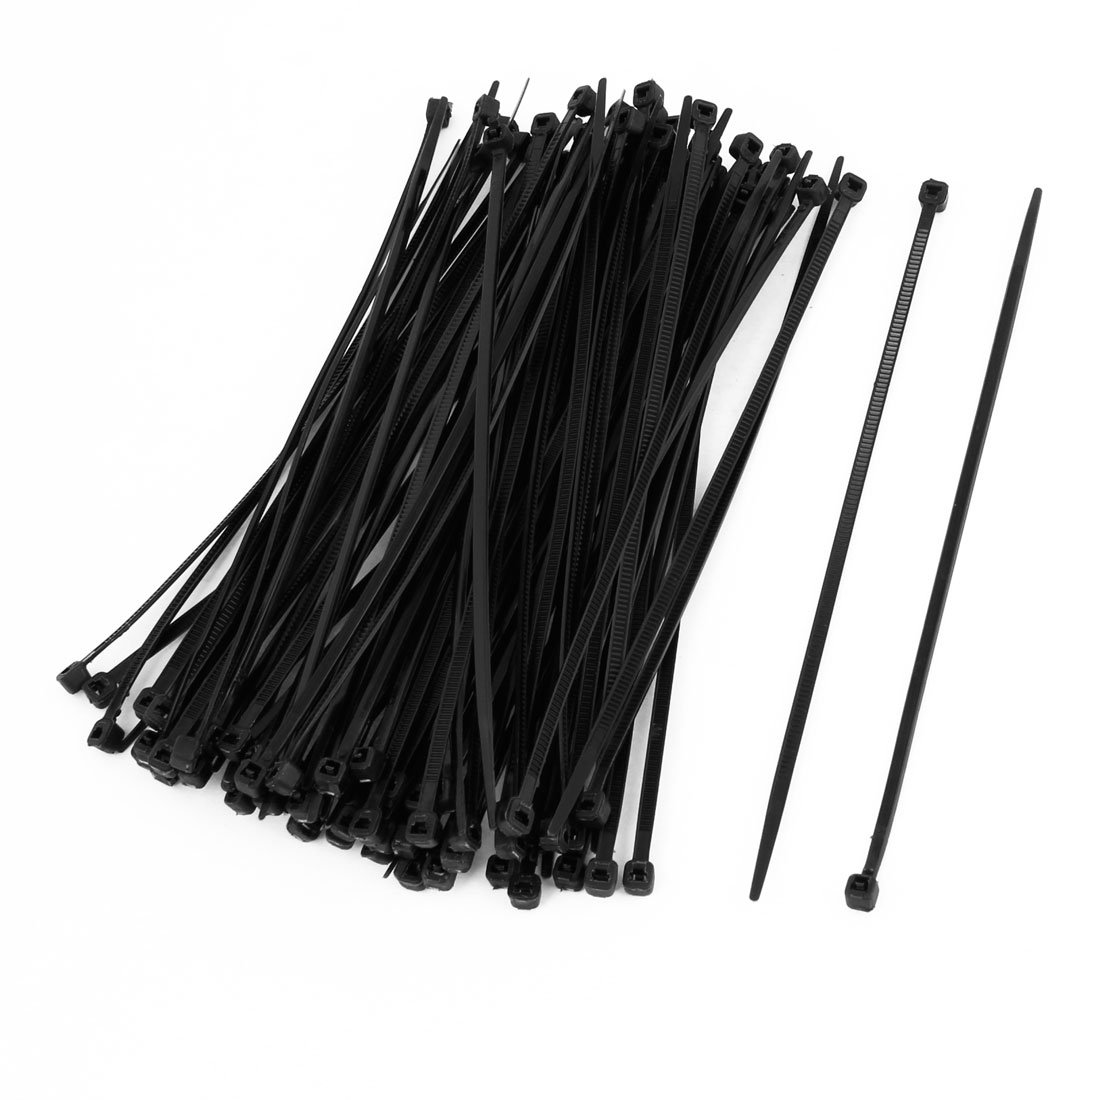 LIXF HOT 100 Pcs 150mm x 2mm Electrical Cable Tie Wrap Nylon Fastening Black